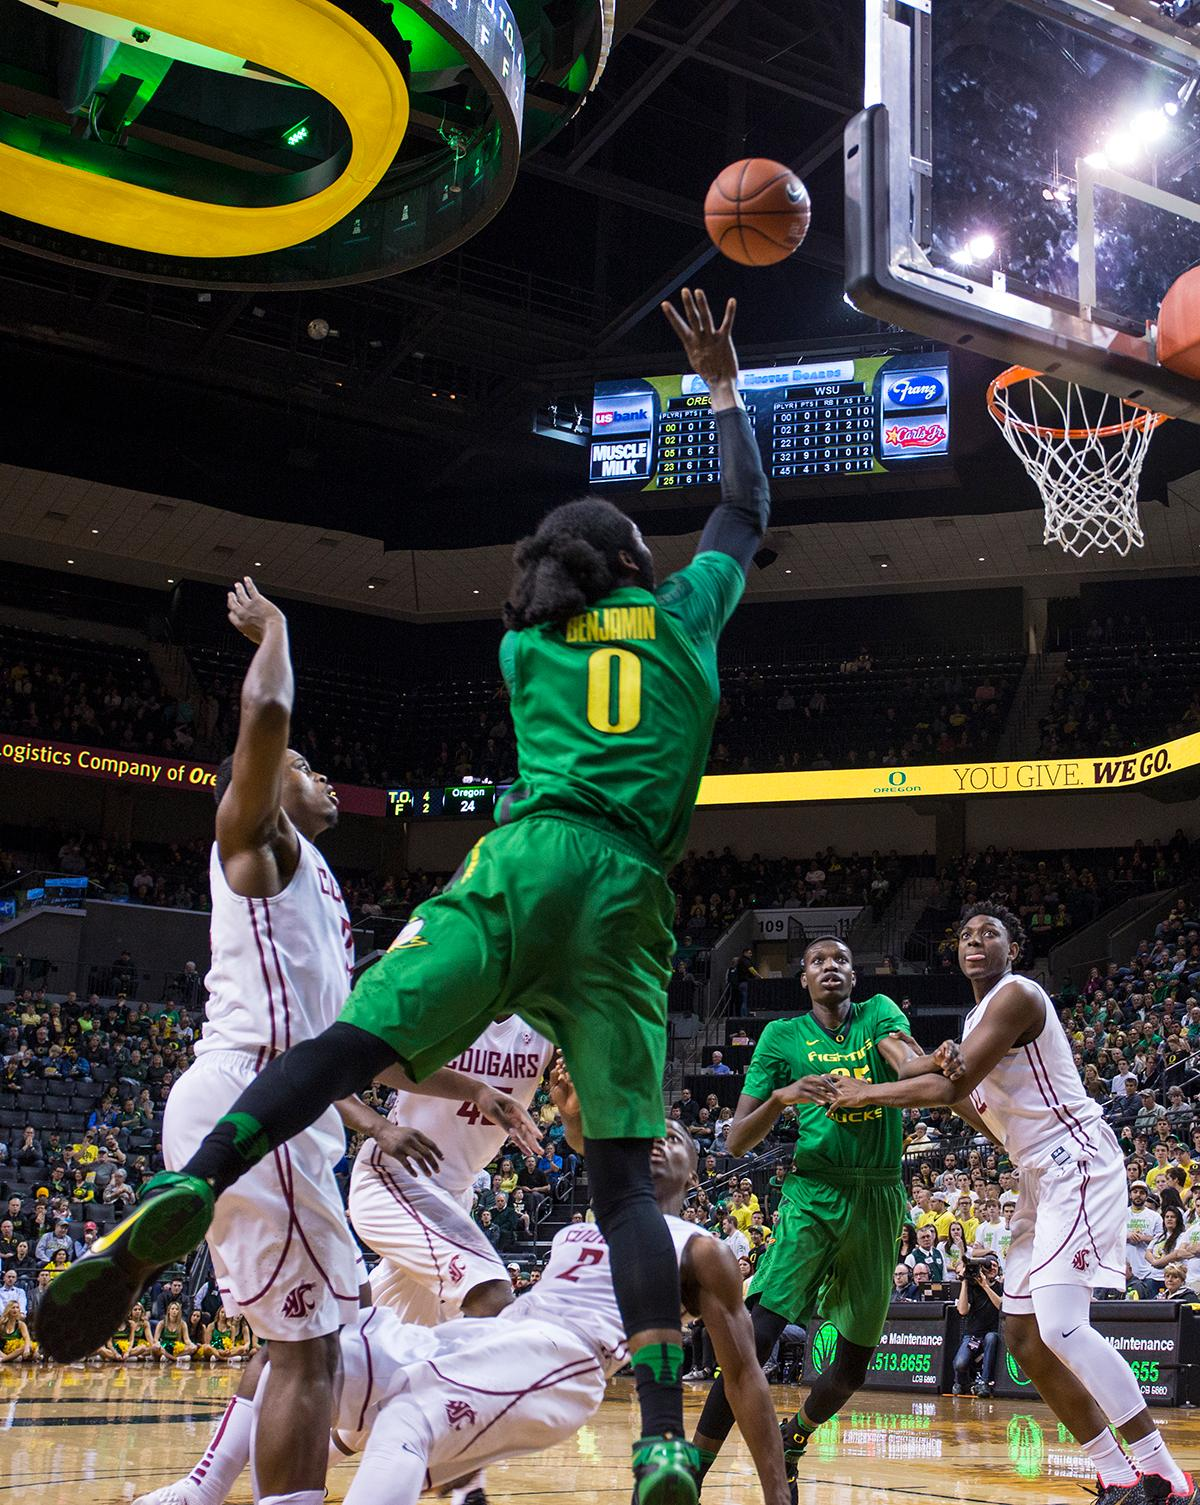 Oregon Ducks' Dwayne Benjamin (#0) lobs the ball toward the basket during the game against the Washington State Cougars. The Ducks beat the Cougars 76-62. Kianna Cabuco, Oregon News Lab